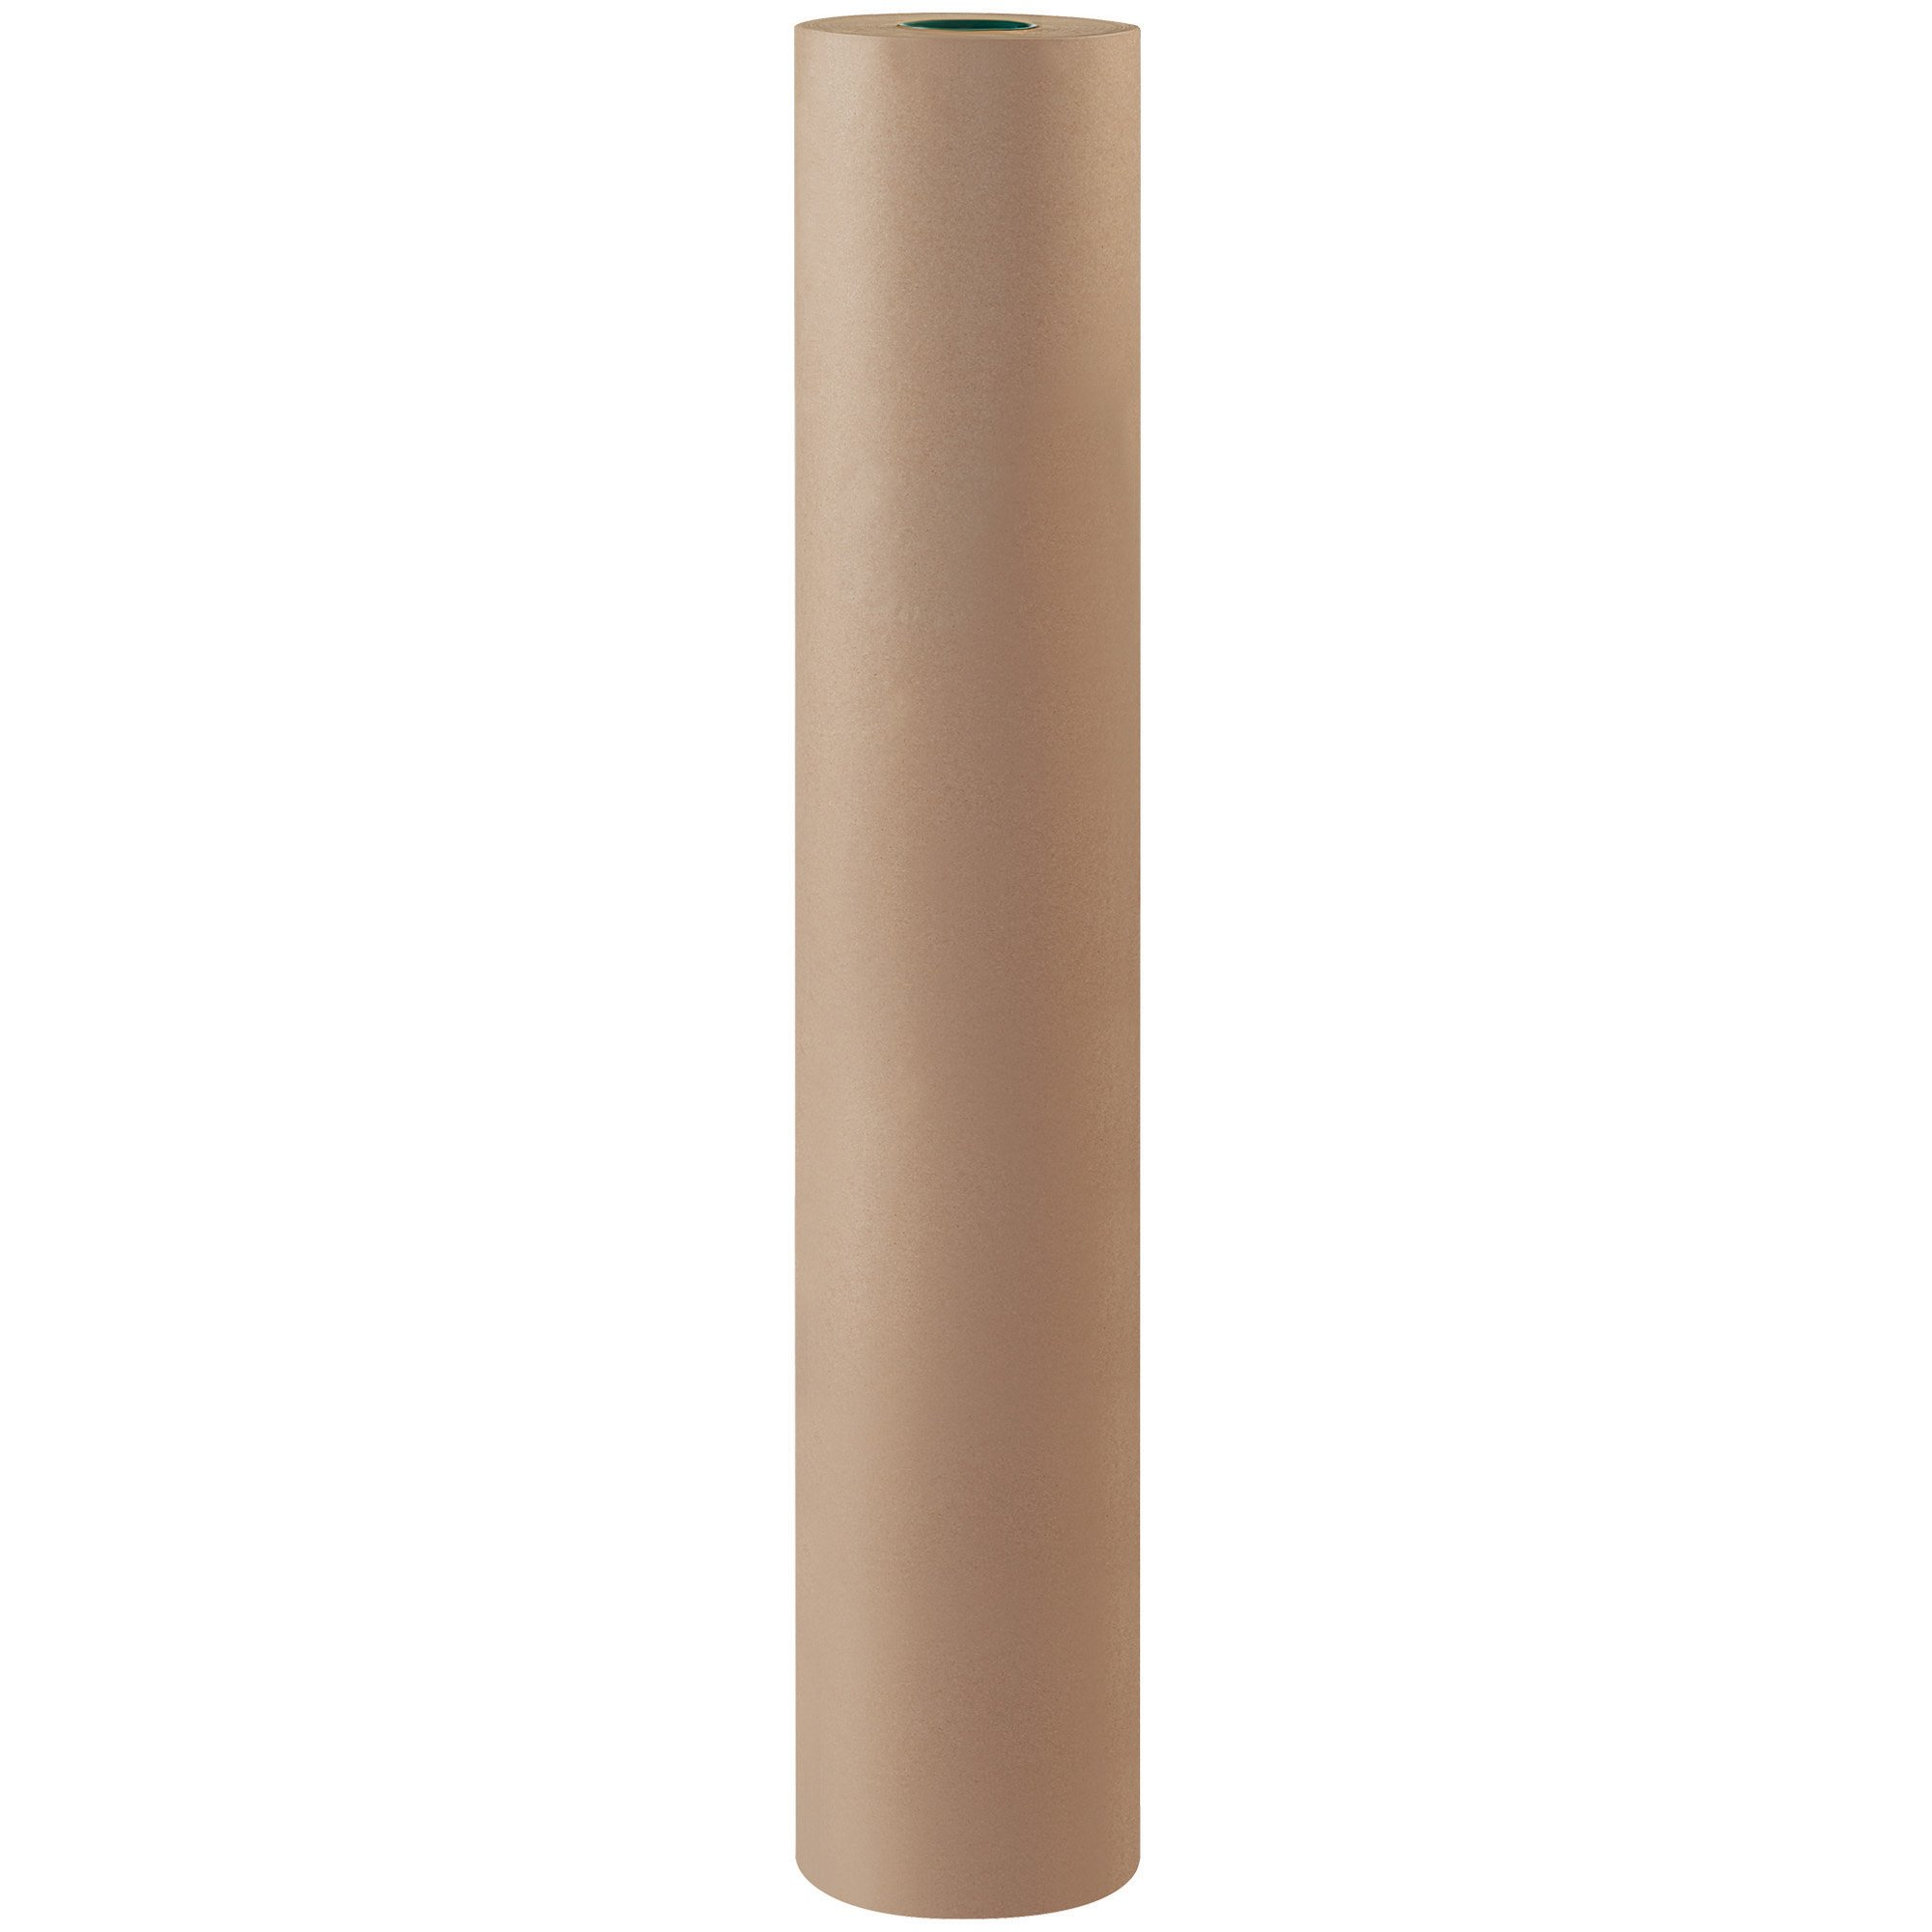 Bogus Kraft Paper Roll, 50#, 48'' x 720', Gray, 1 Roll by Choice Shipping Supplies